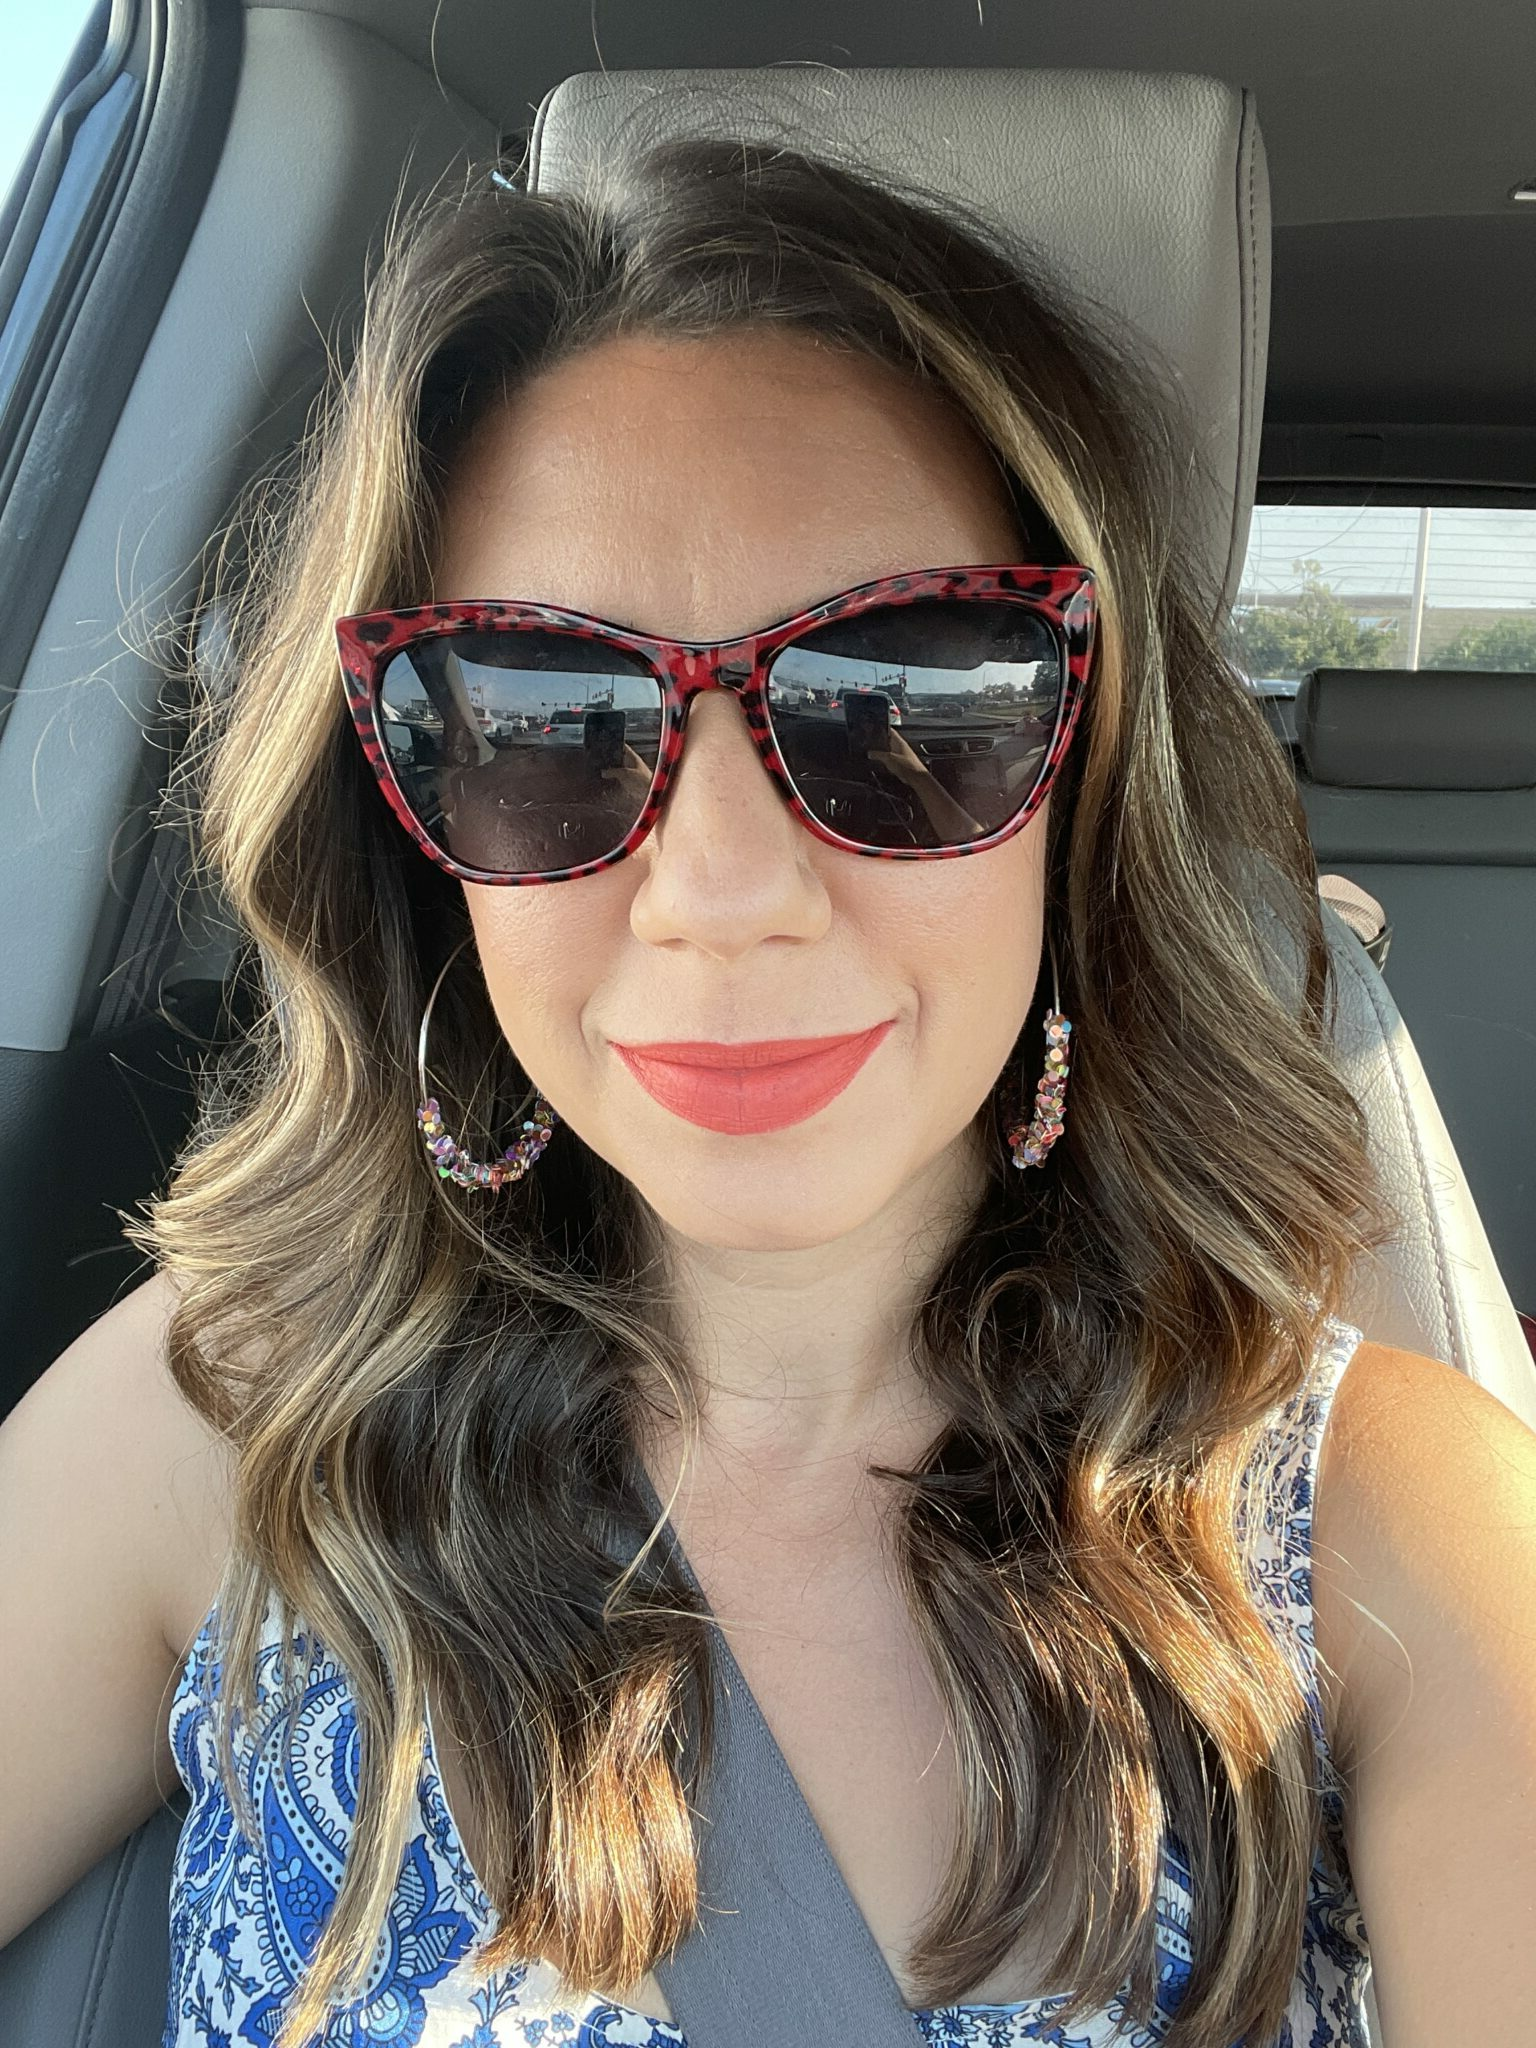 summer lipsticks | Summer Lipstick Colors by popular Chicago beauty blog, Glass of Glam: image of a woman wearing red tortoise shell sunglasses, red lipstick and a blue and white paisley top.